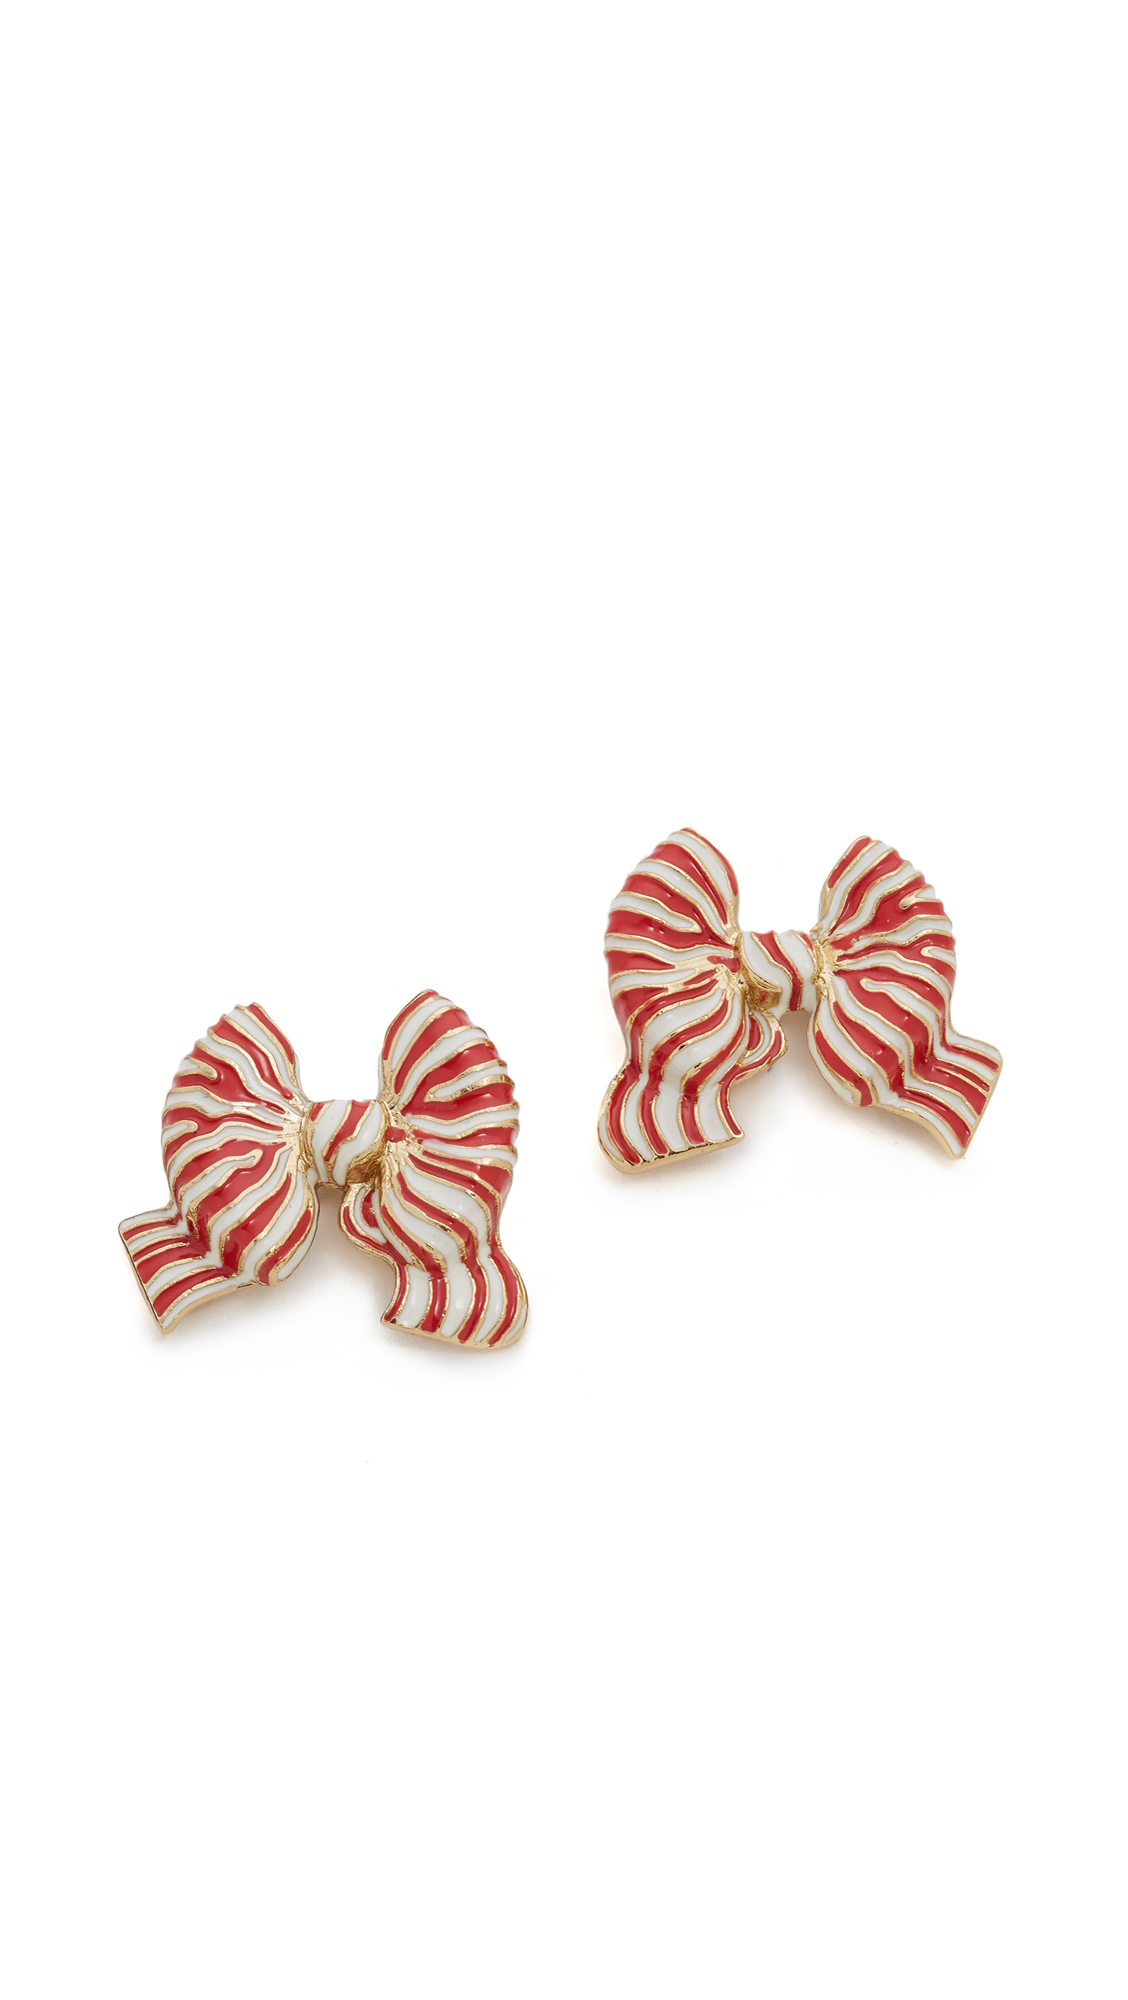 Kate Spade New York Out Of The Loop Bow Statement Studs Earrings ...